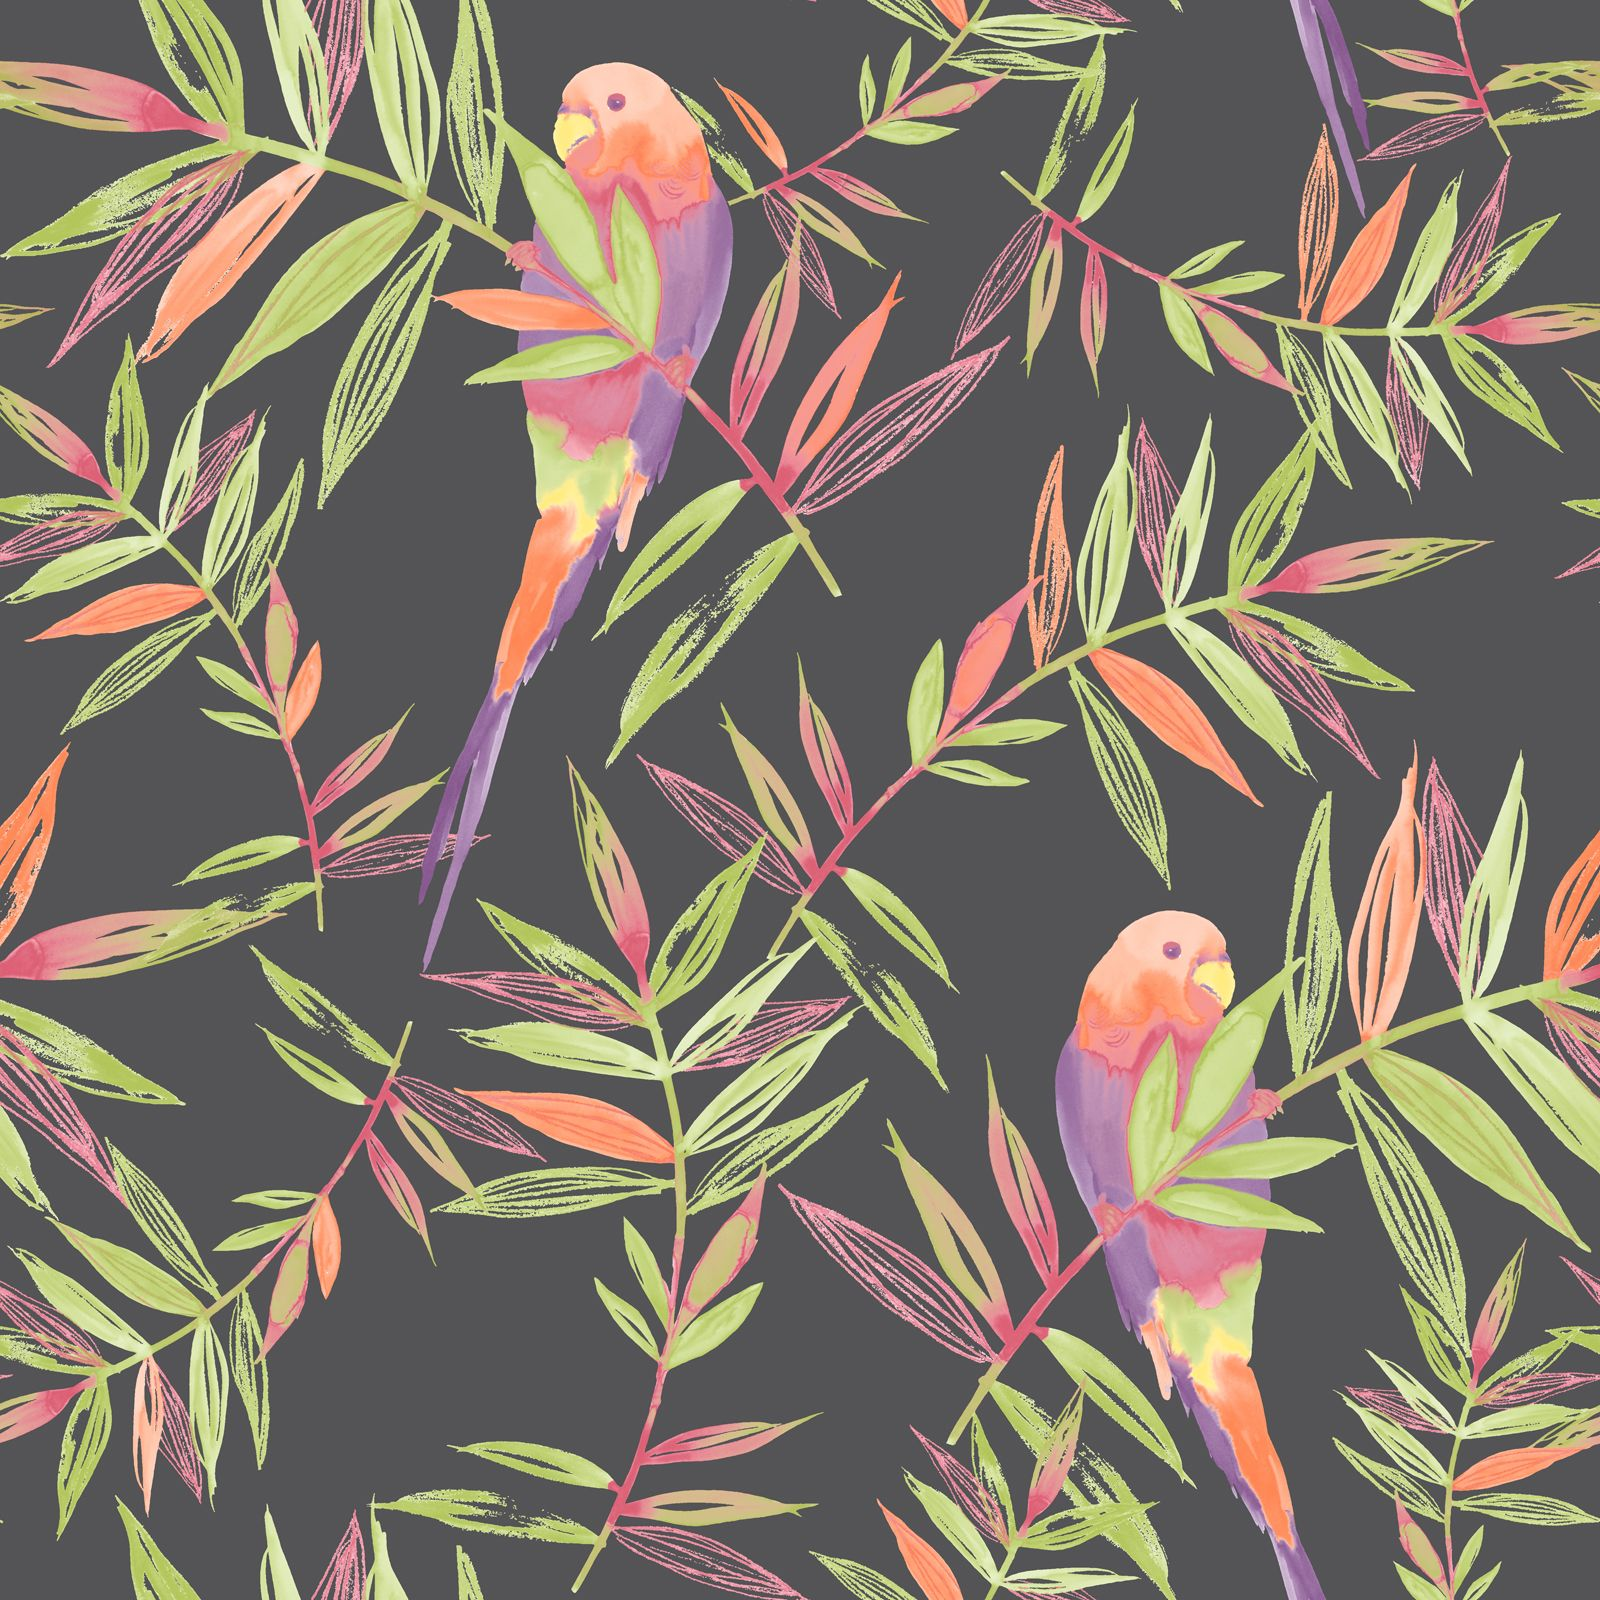 tropical pattern wallpaper  Birds Wallpaper Tropical Floral Leaves Jungle Black Multi Coloured ...